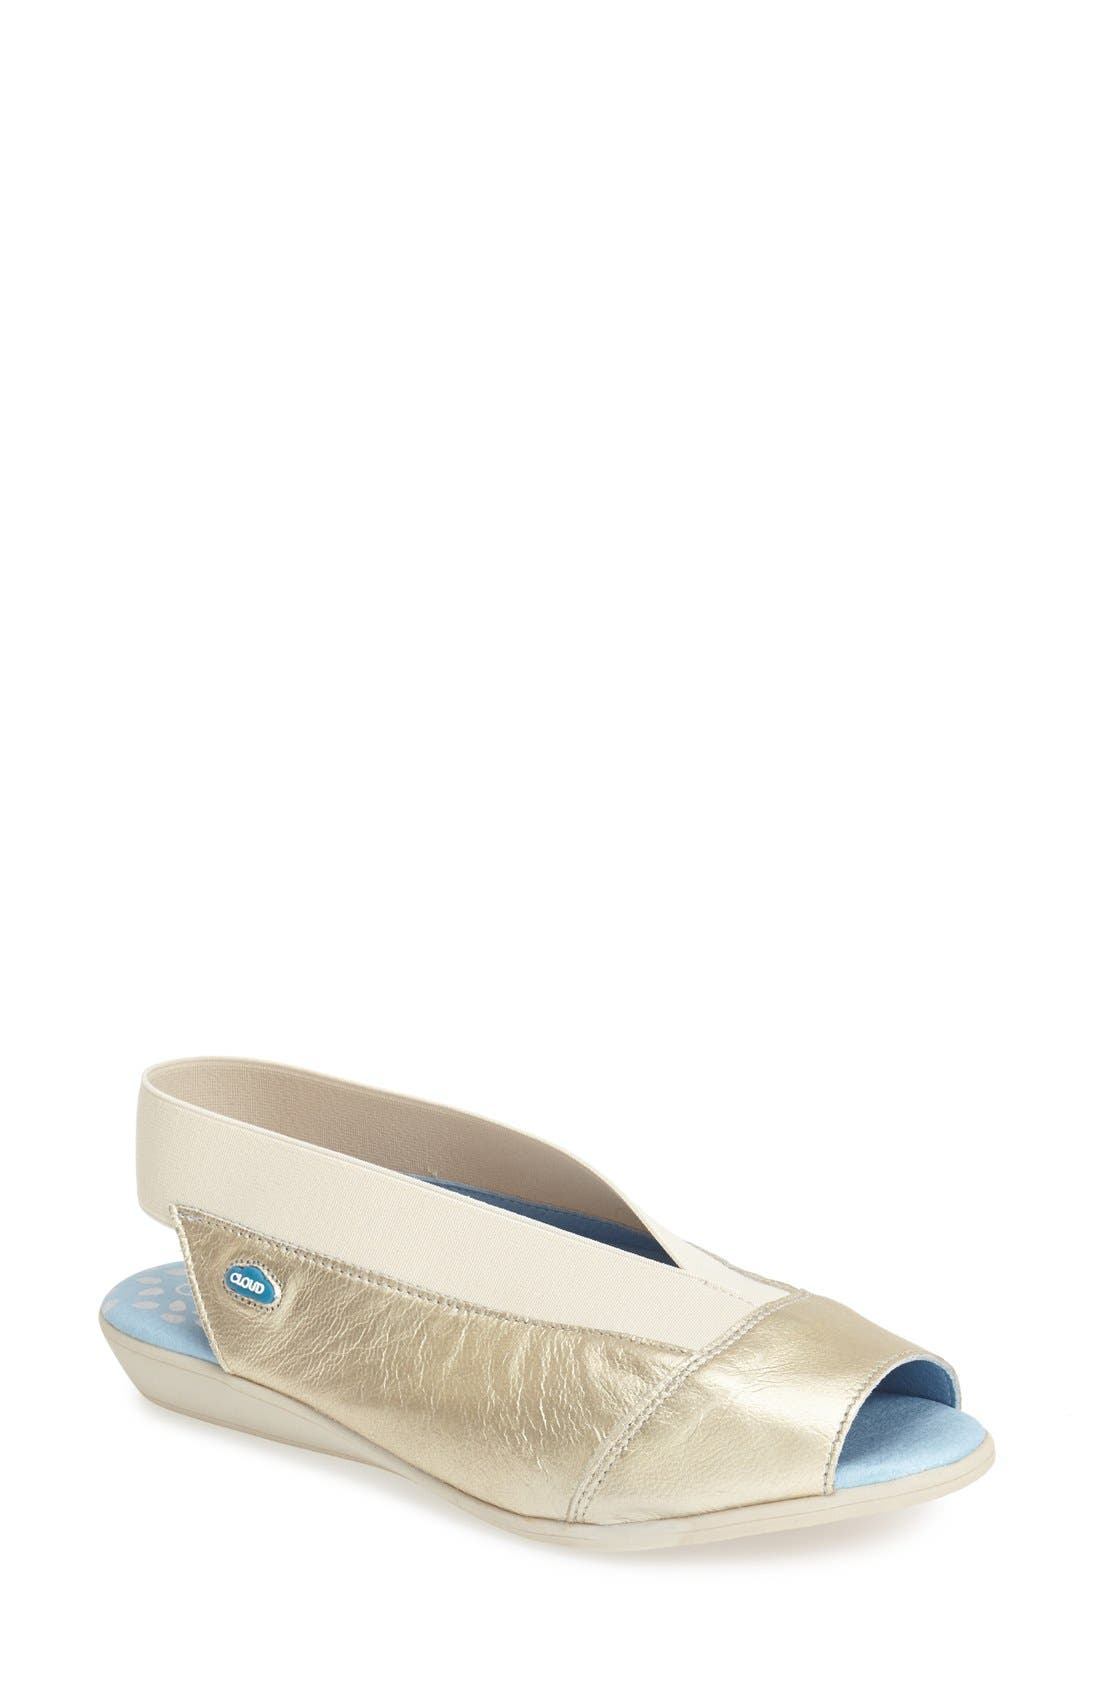 'Caliber' Peep Toe Leather Sandal,                         Main,                         color, GOLD